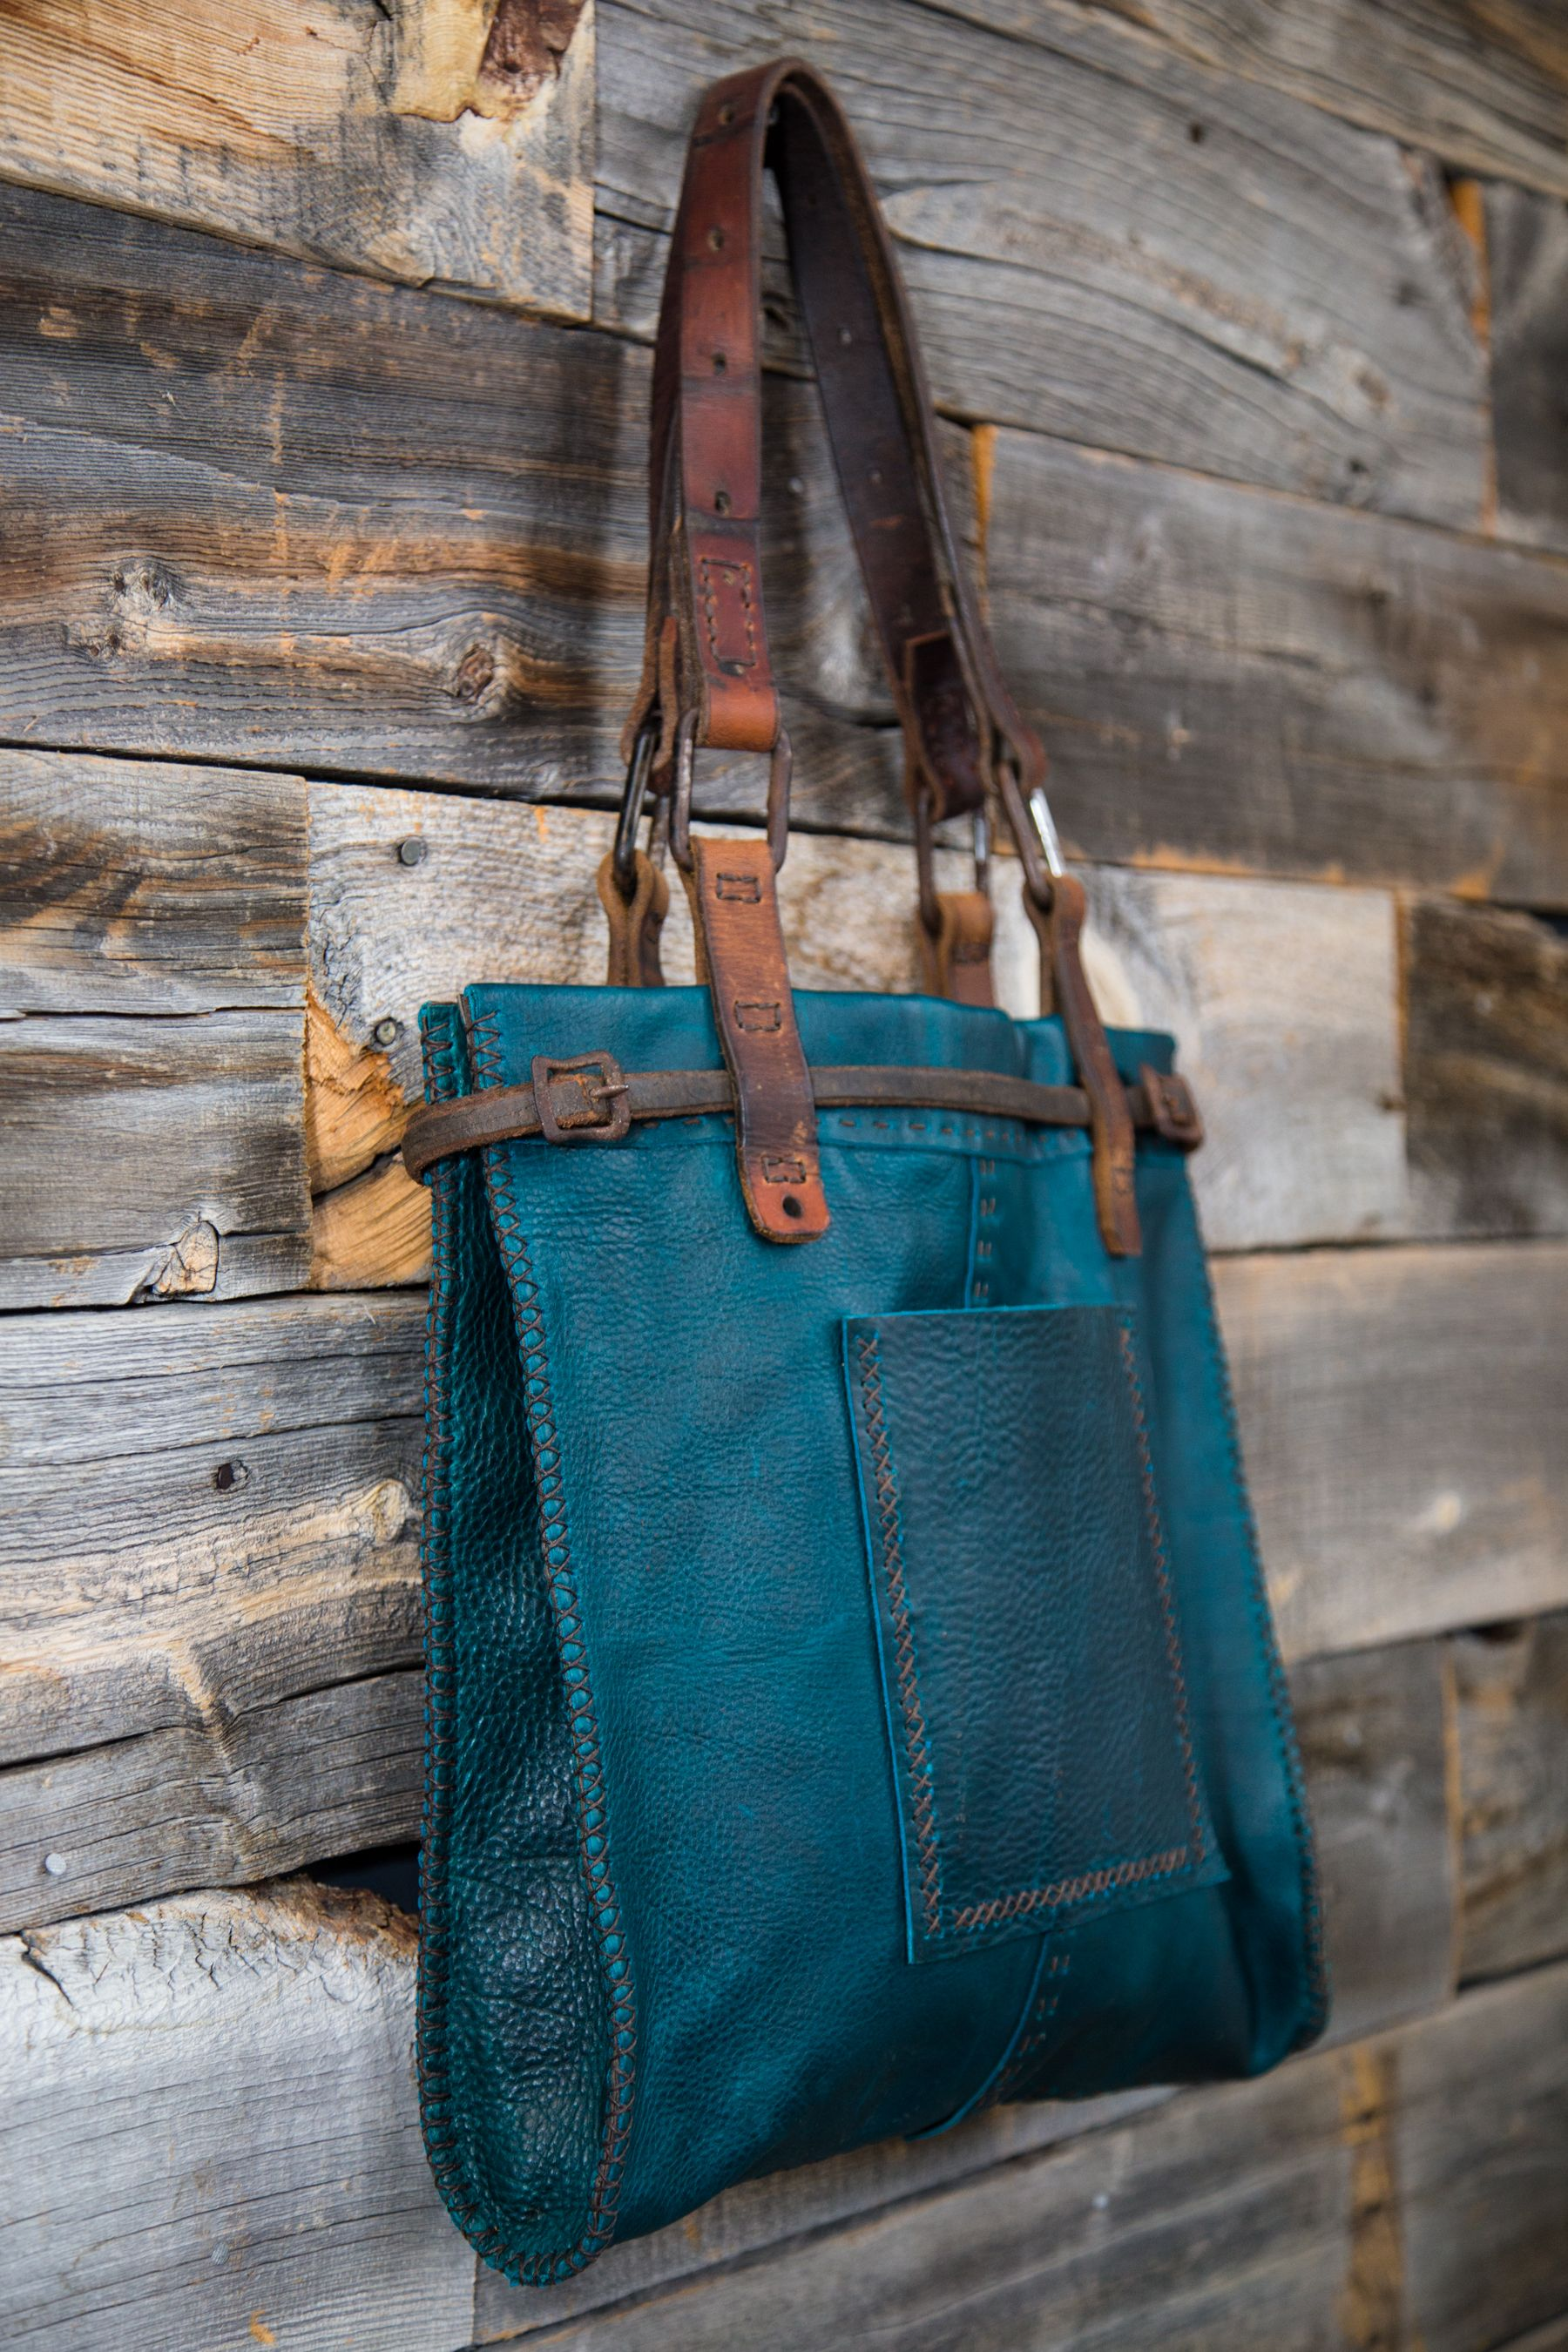 CIBADO leather bags Entirely hand sewn teal buffalo leather tote  incorporating vintage horse tack to become handles and decorative detail. e42fe0654b52d